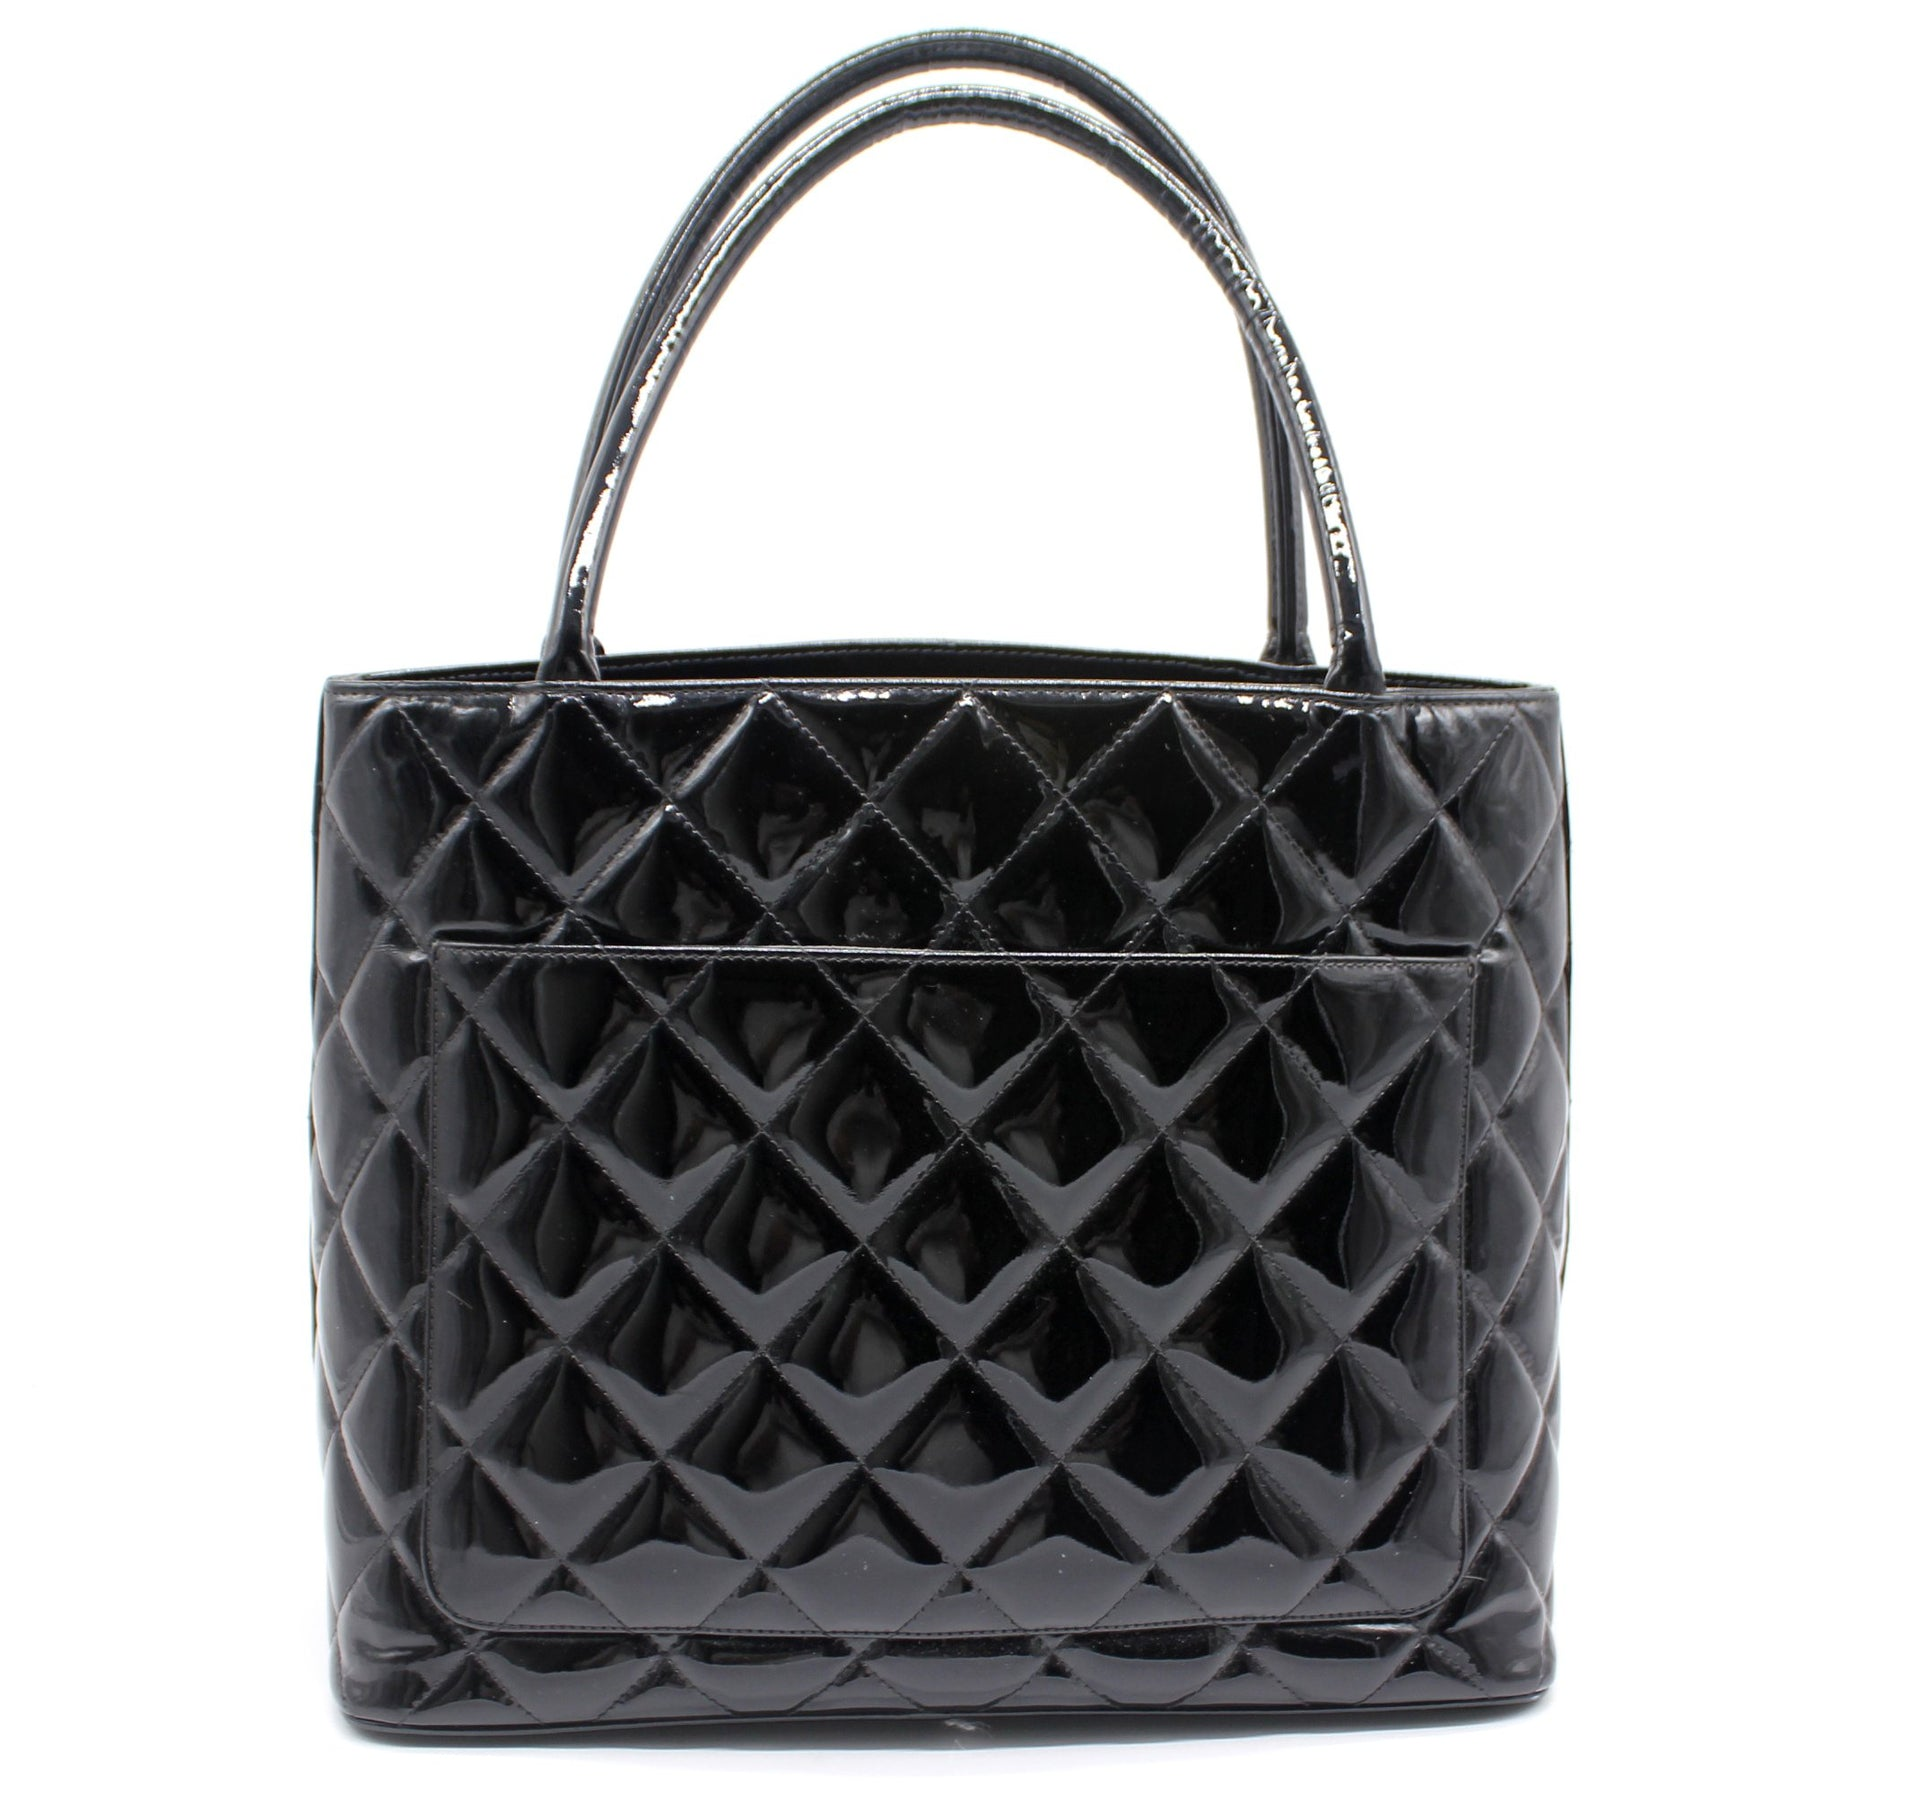 Chanel Vintage CC quilted tote bag in Patent Leather